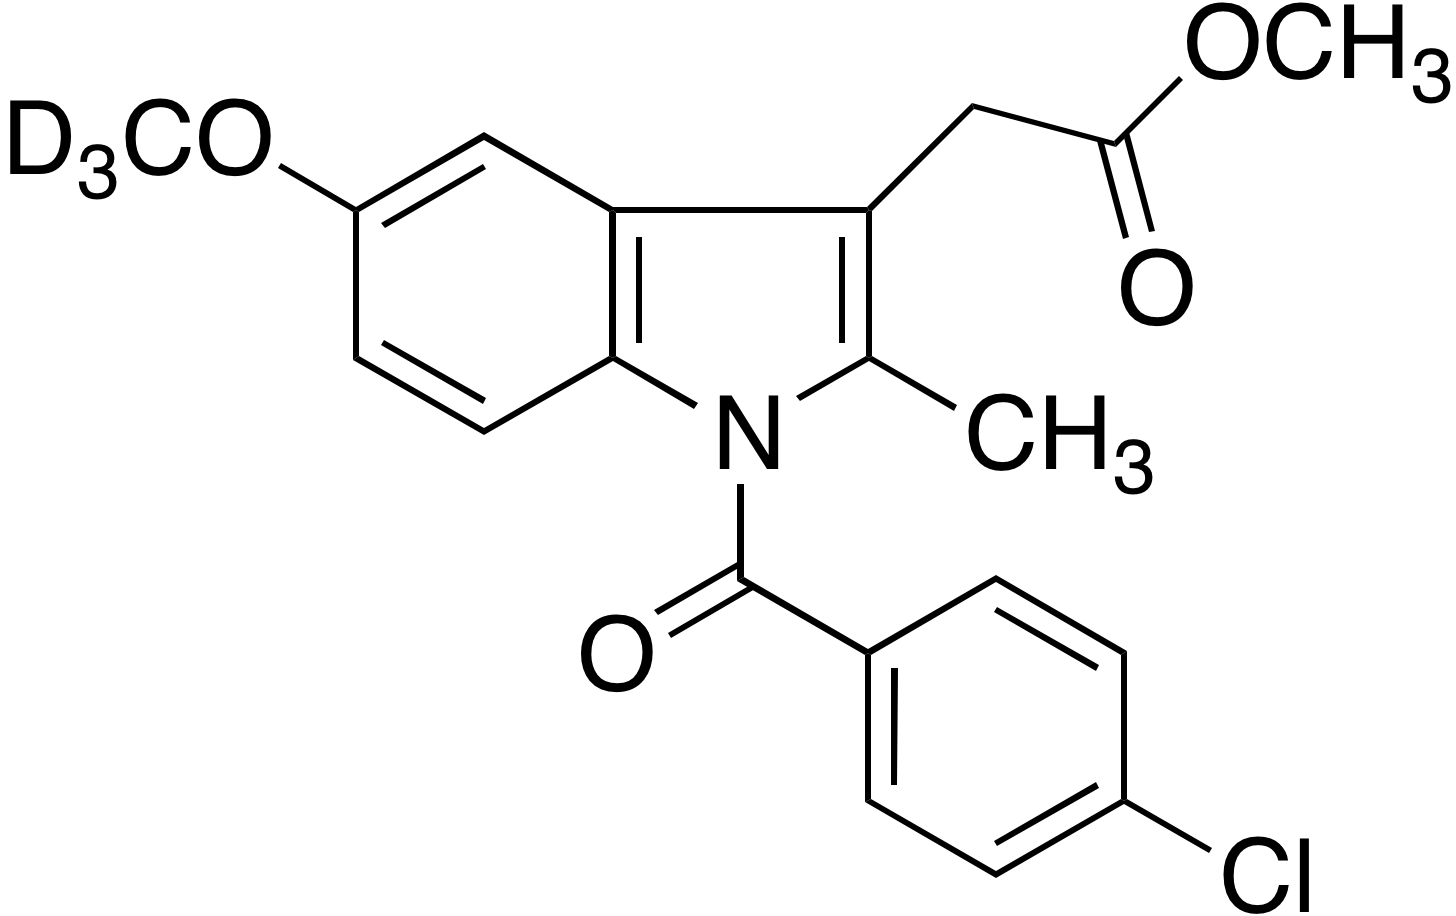 Indomethacin methyl ester-d<sub>3</sub>